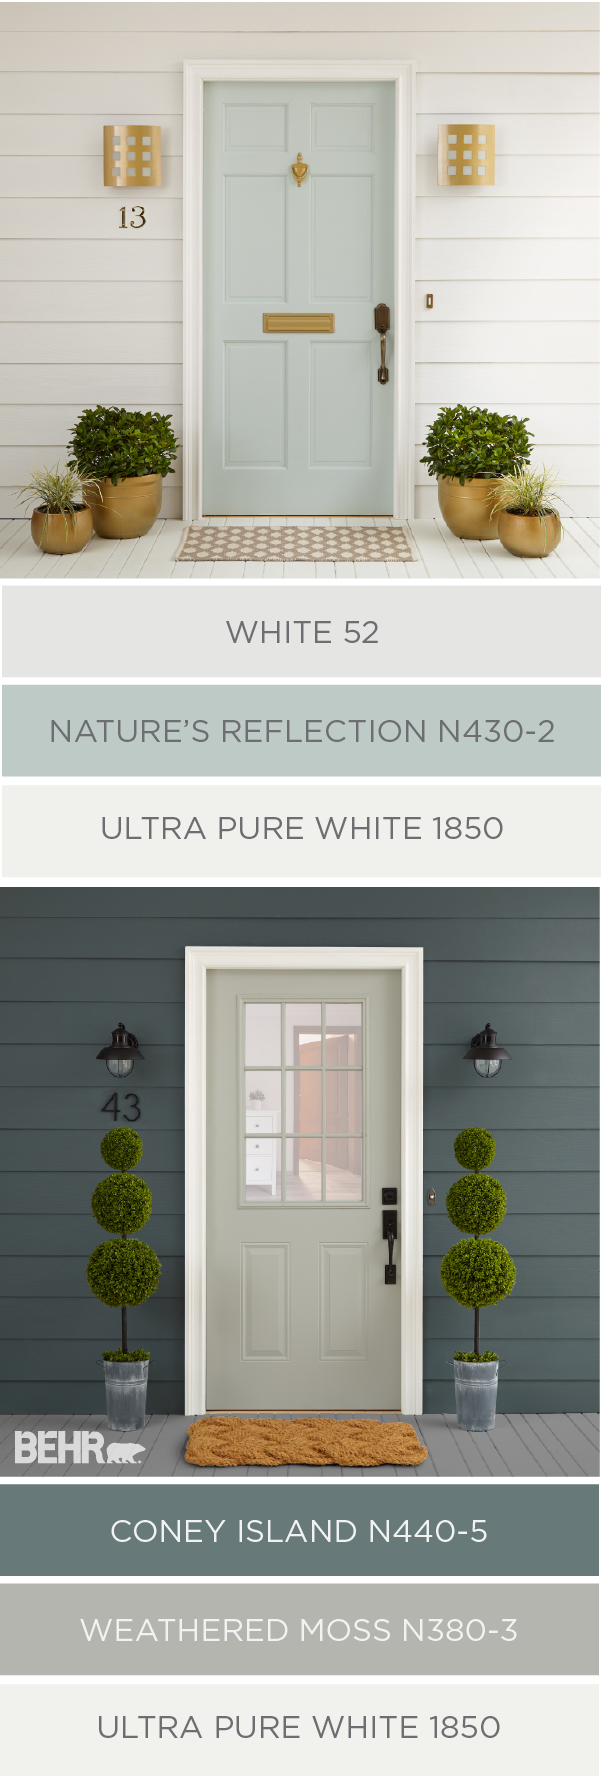 Easy Exterior Updates | Curb appeal, Front doors and Behr